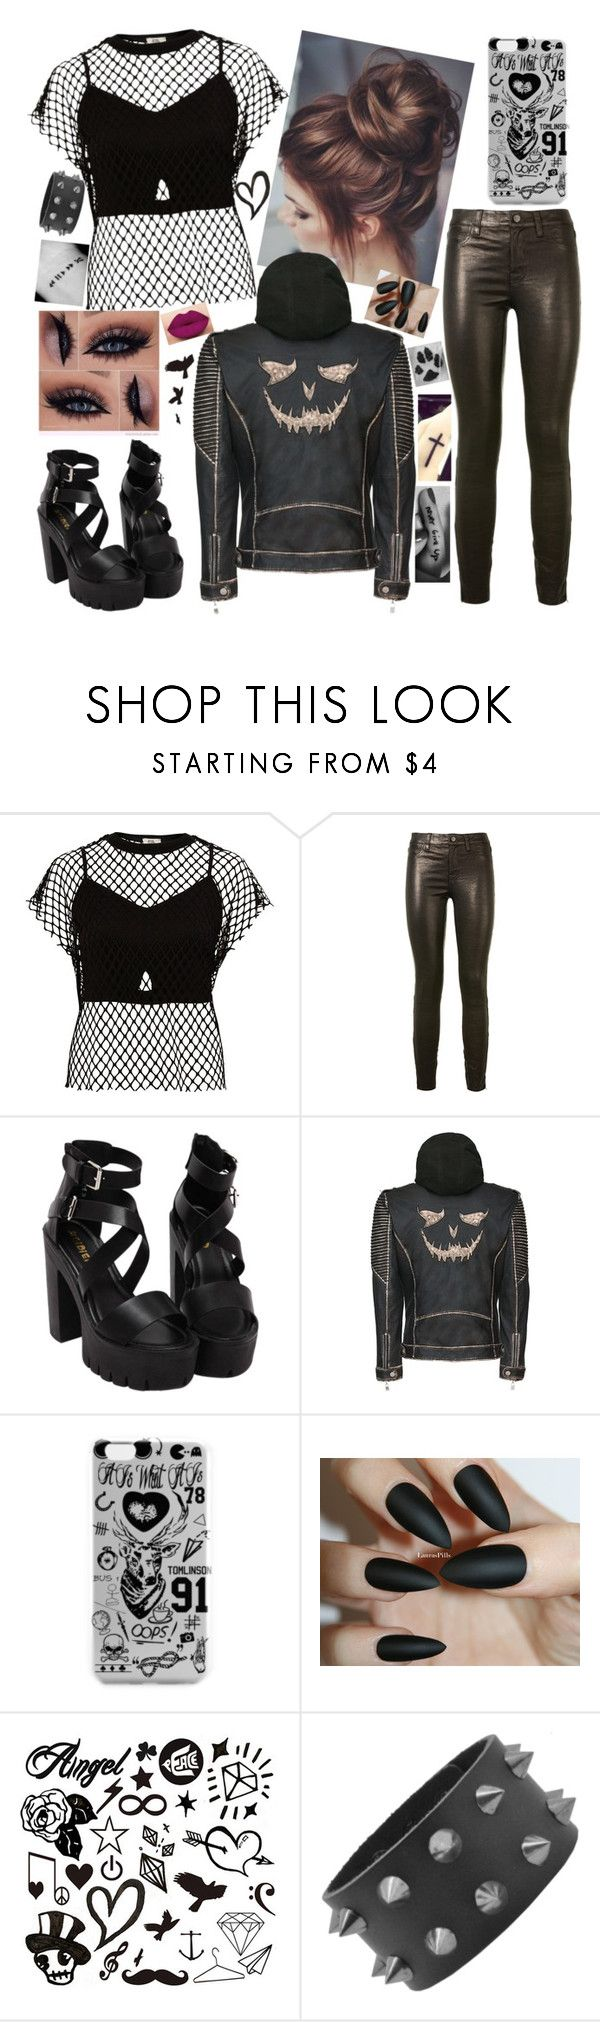 """""""Joker ❤"""" by tany-buny ❤ liked on Polyvore featuring River Island, J Brand and Disney"""